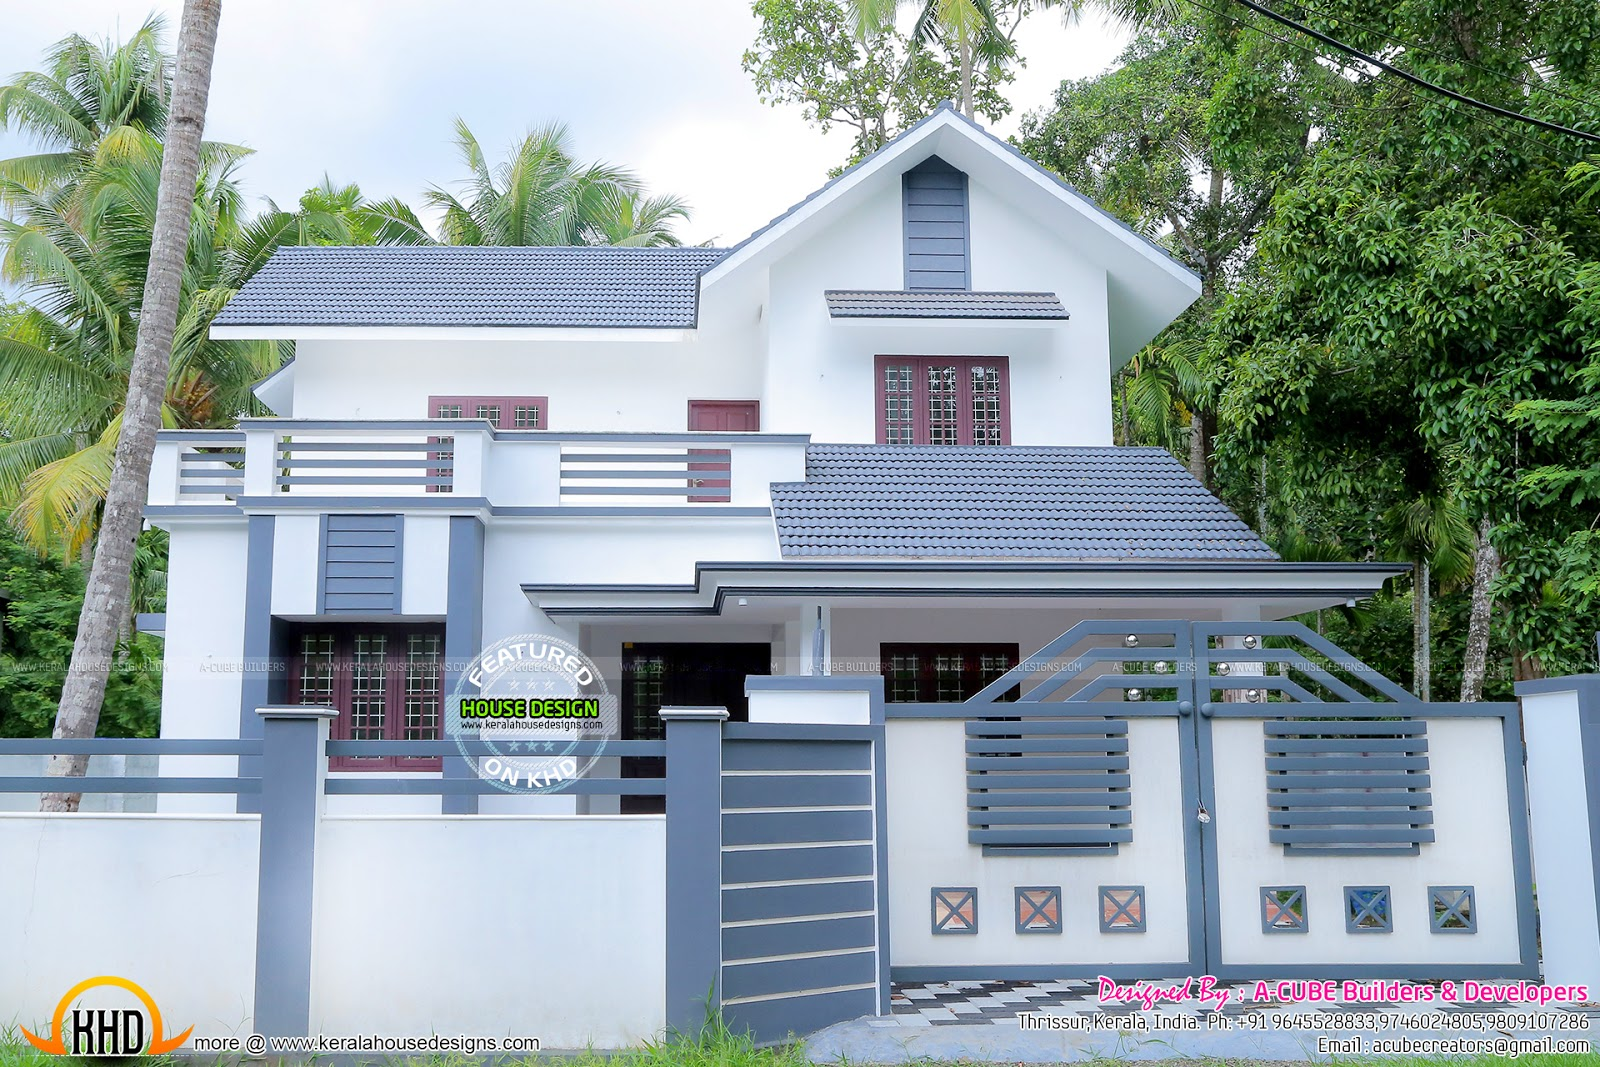 work completed house in 1983 sq ft kerala home design and floor plans. Black Bedroom Furniture Sets. Home Design Ideas